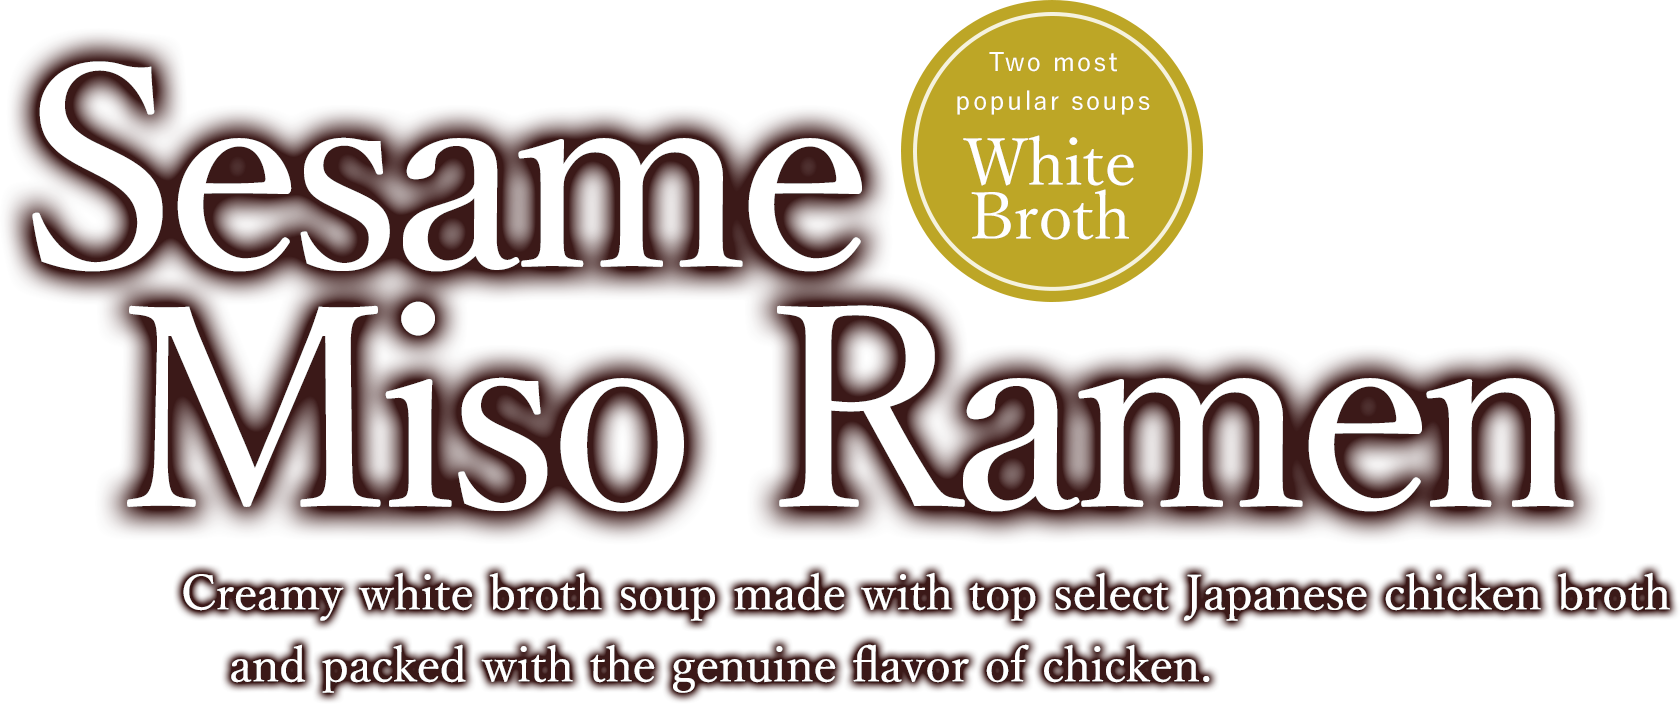 Sesame Miso Ramen Creamy white broth soup made with top select Japanese chicken broth and packed with the genuine flavor of chicken.